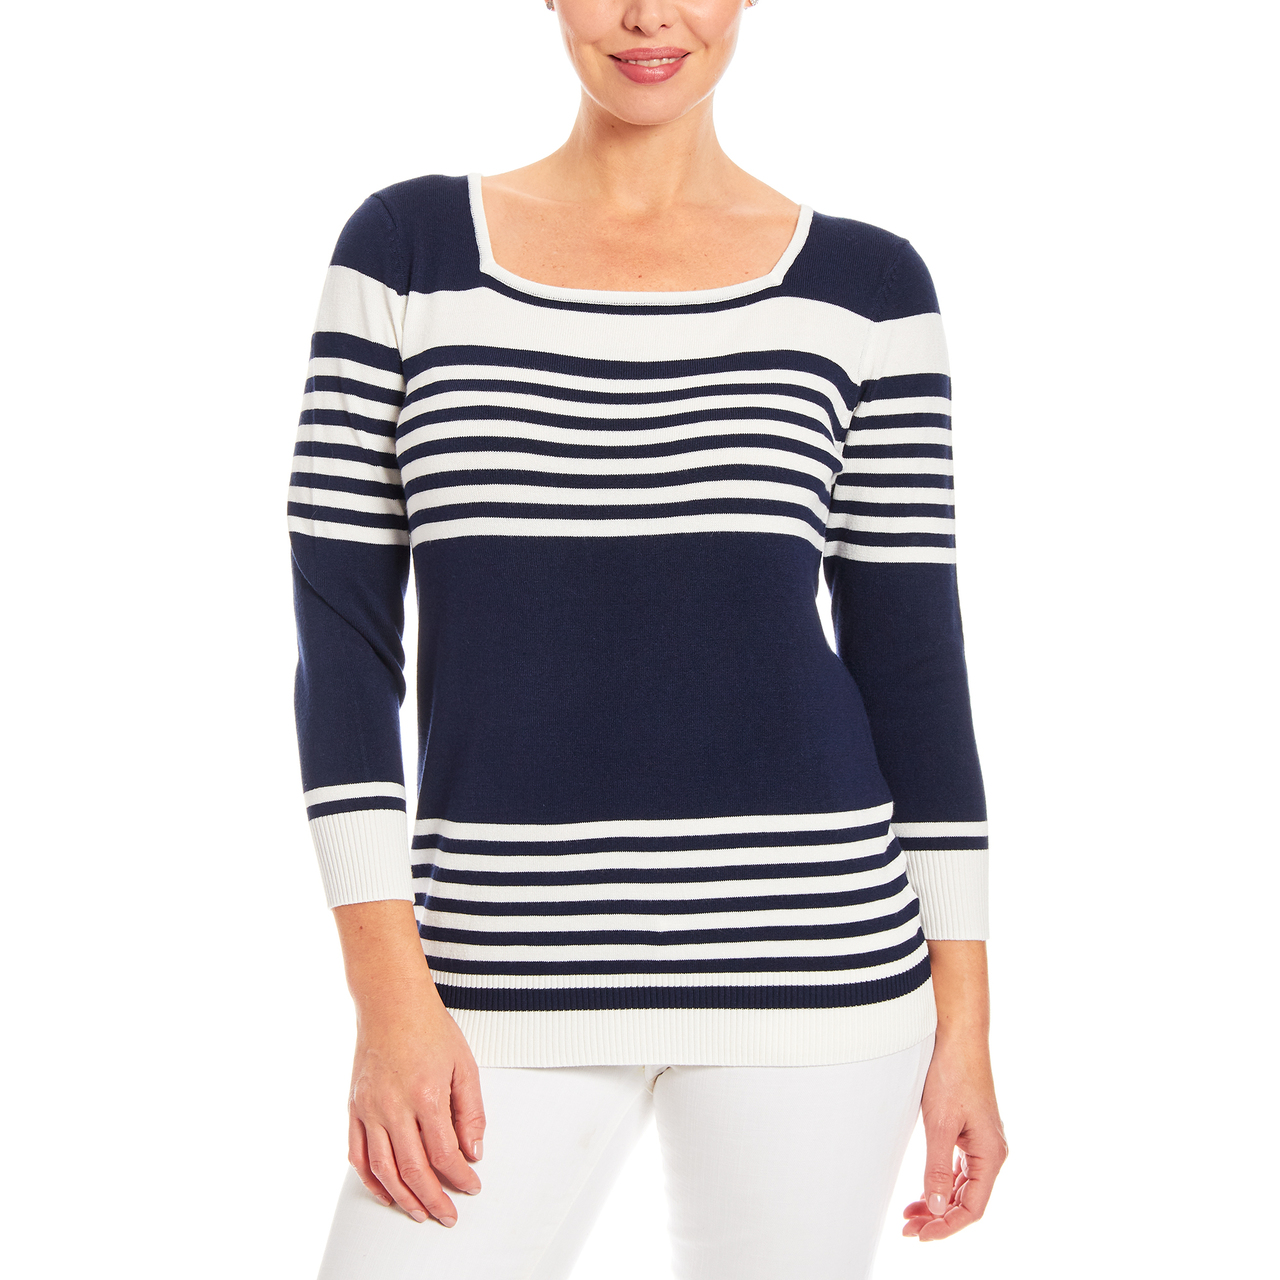 3/4 Sleeve Square Neck Stripe Sweater in Navy And Ivory